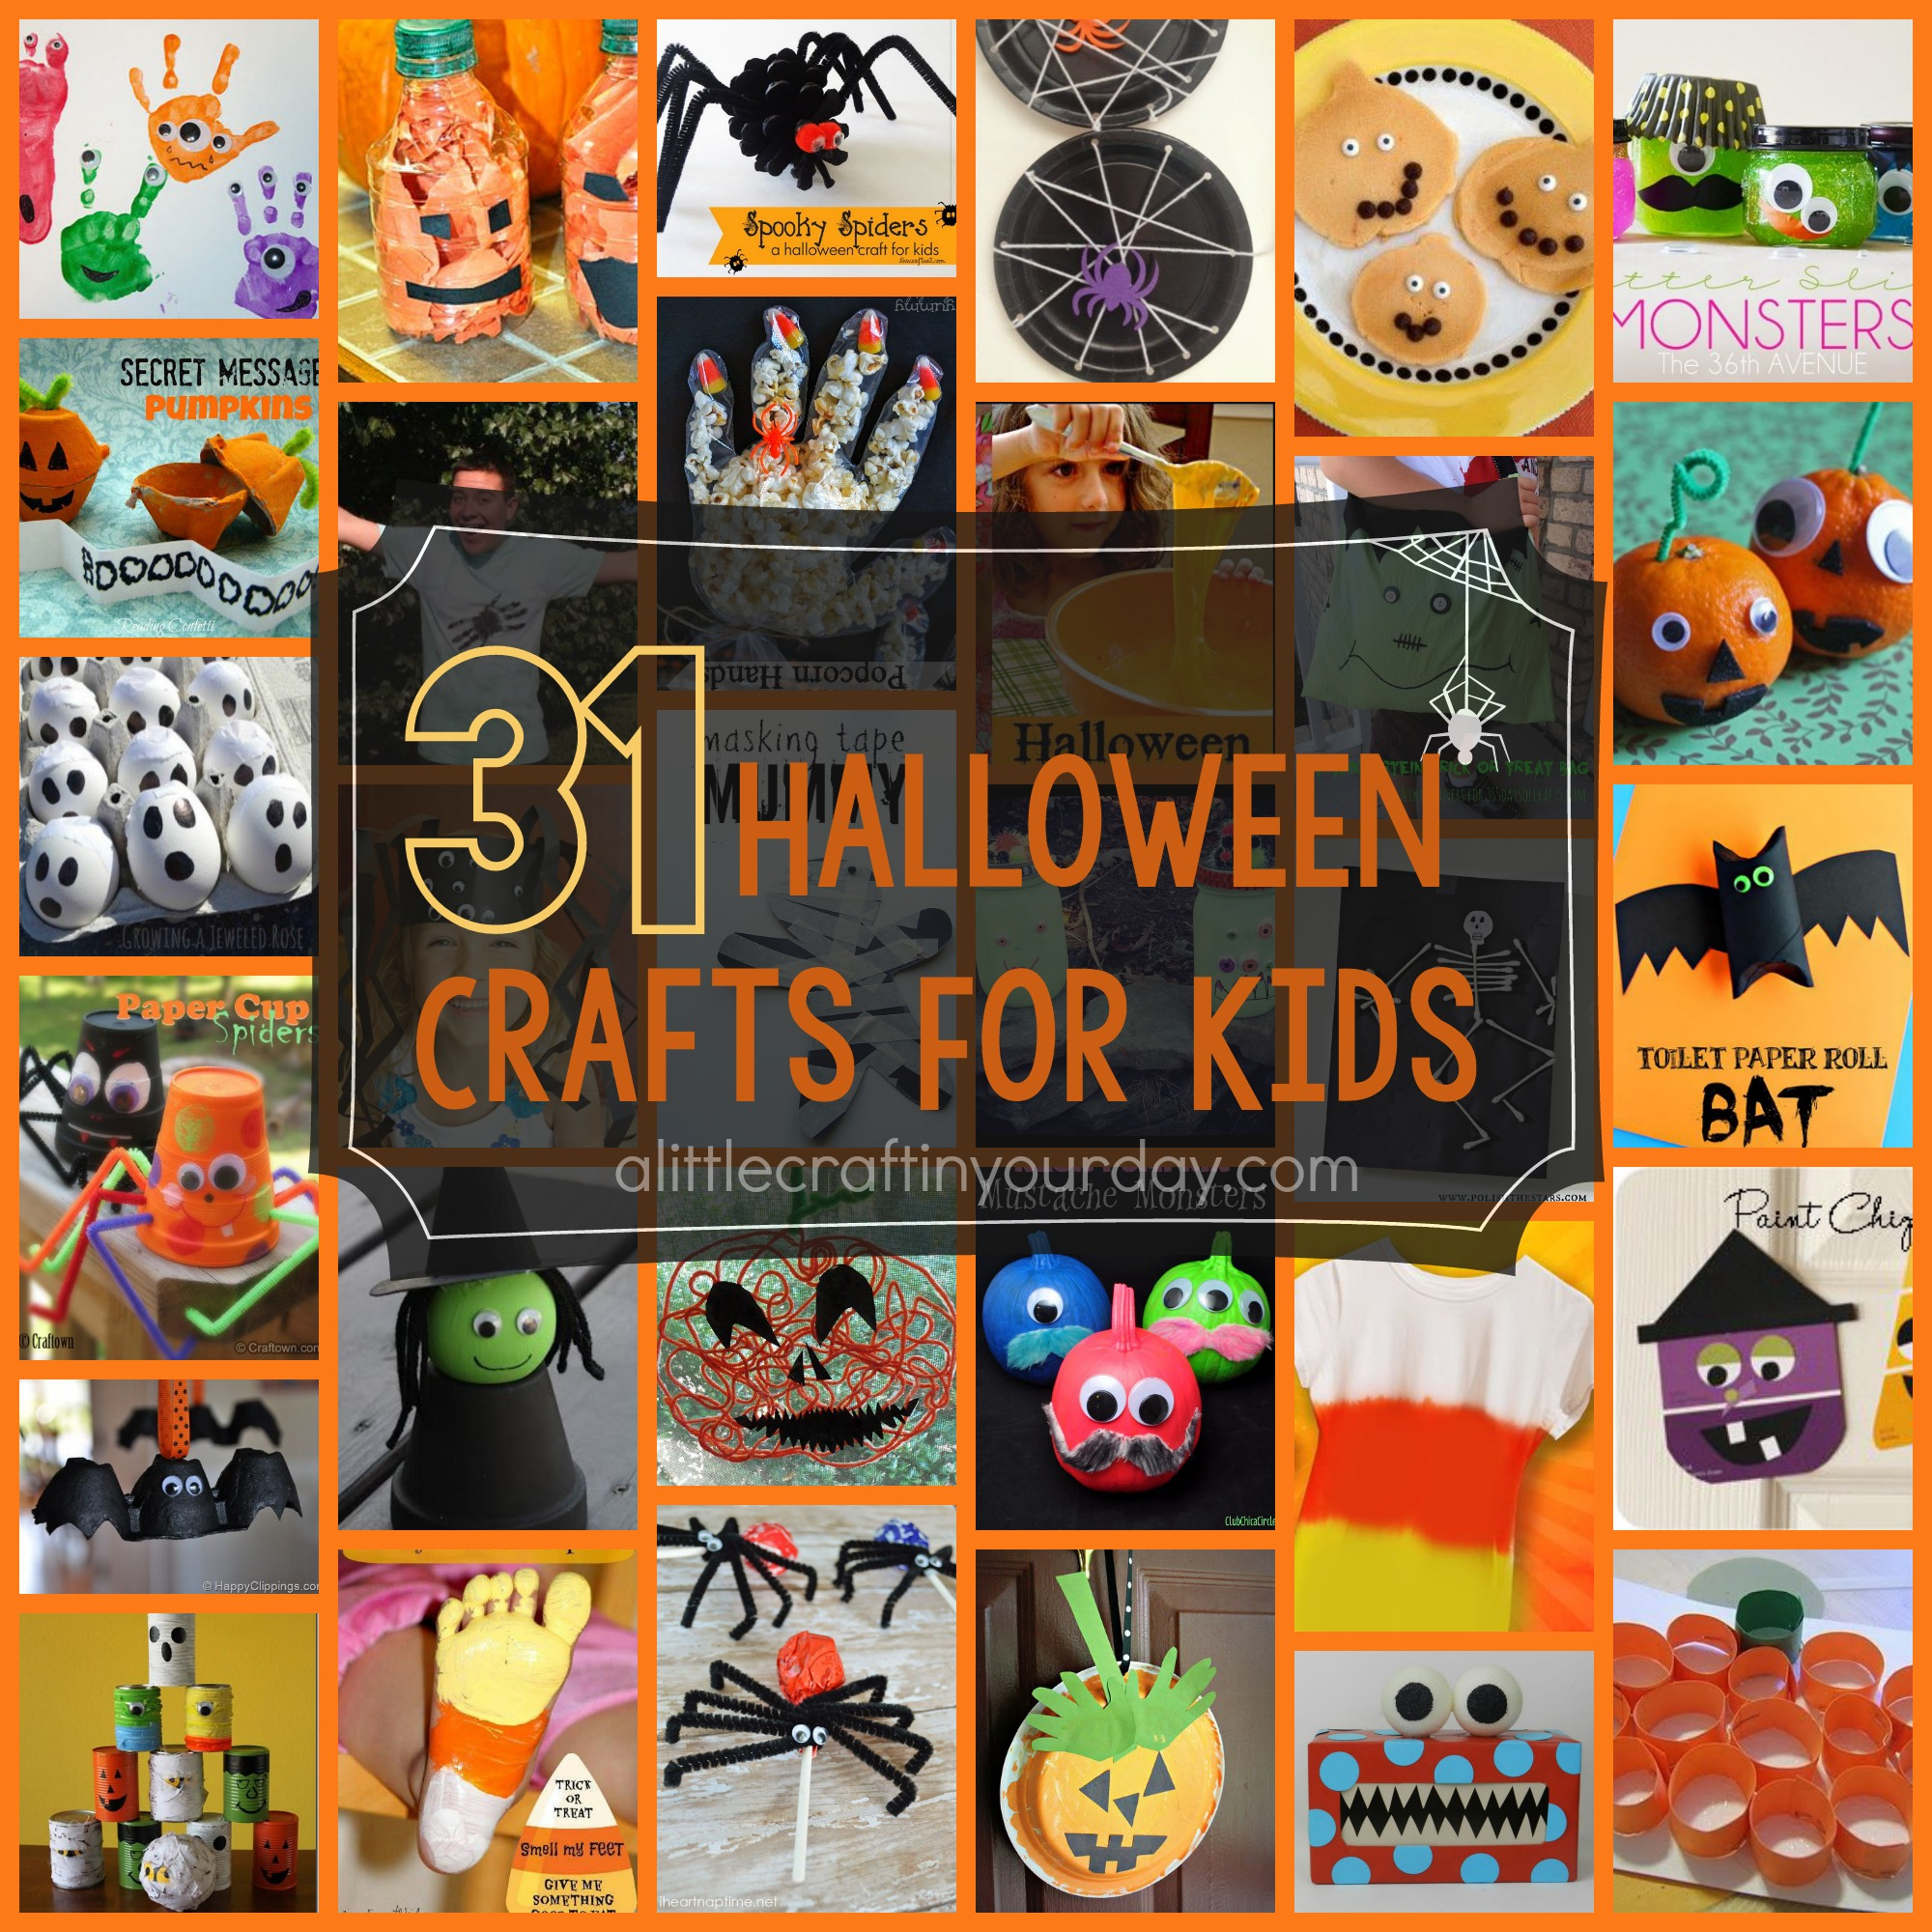 Little Kid Crafts For All Seasons Kid Crafts Magazine